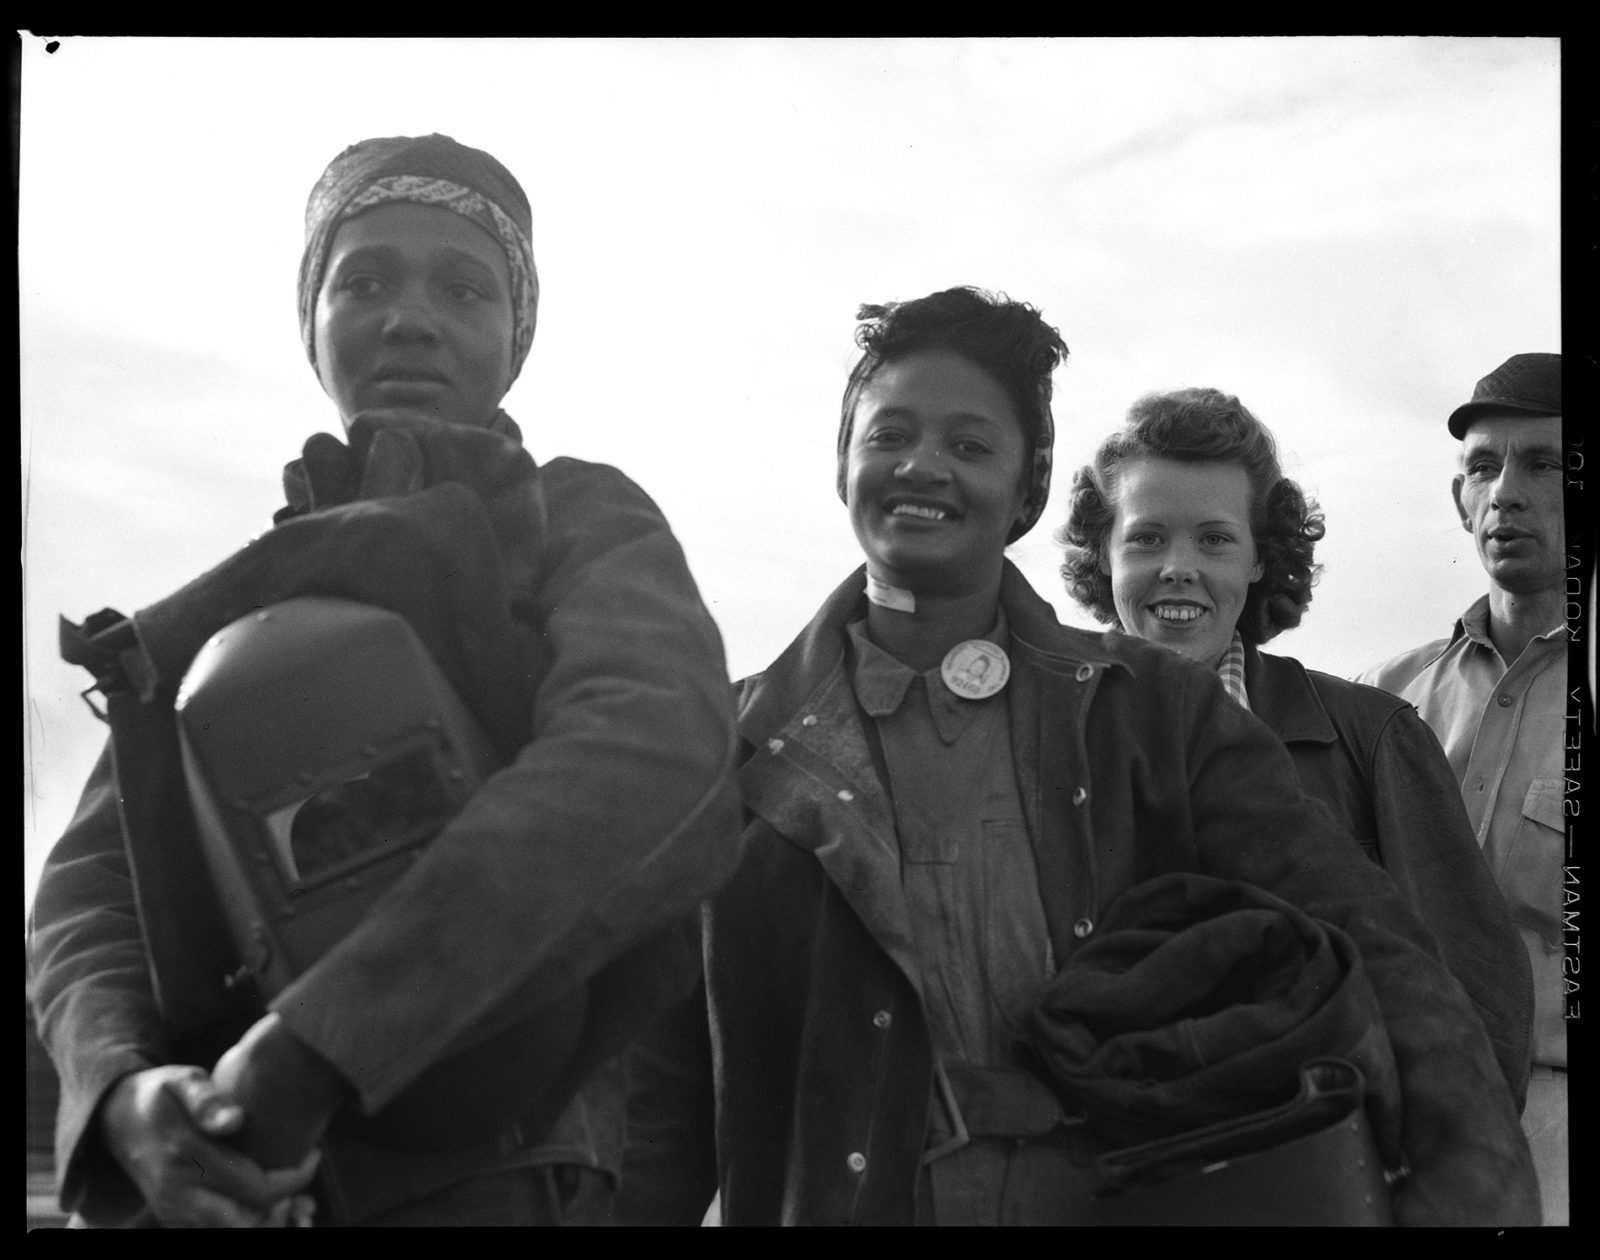 Women line up for paychecks-Richmond Shipyards Richmond, CA, Circa 1942. Dorothea Lange. Film negative, Gift of Paul S. Taylor 5 in x 4 in., A67.137.42080.4 © The Dorothea Lange Collection, the Oakland Museum of California. Digitized for the Oakland Museum of California 2019 Luce Grant